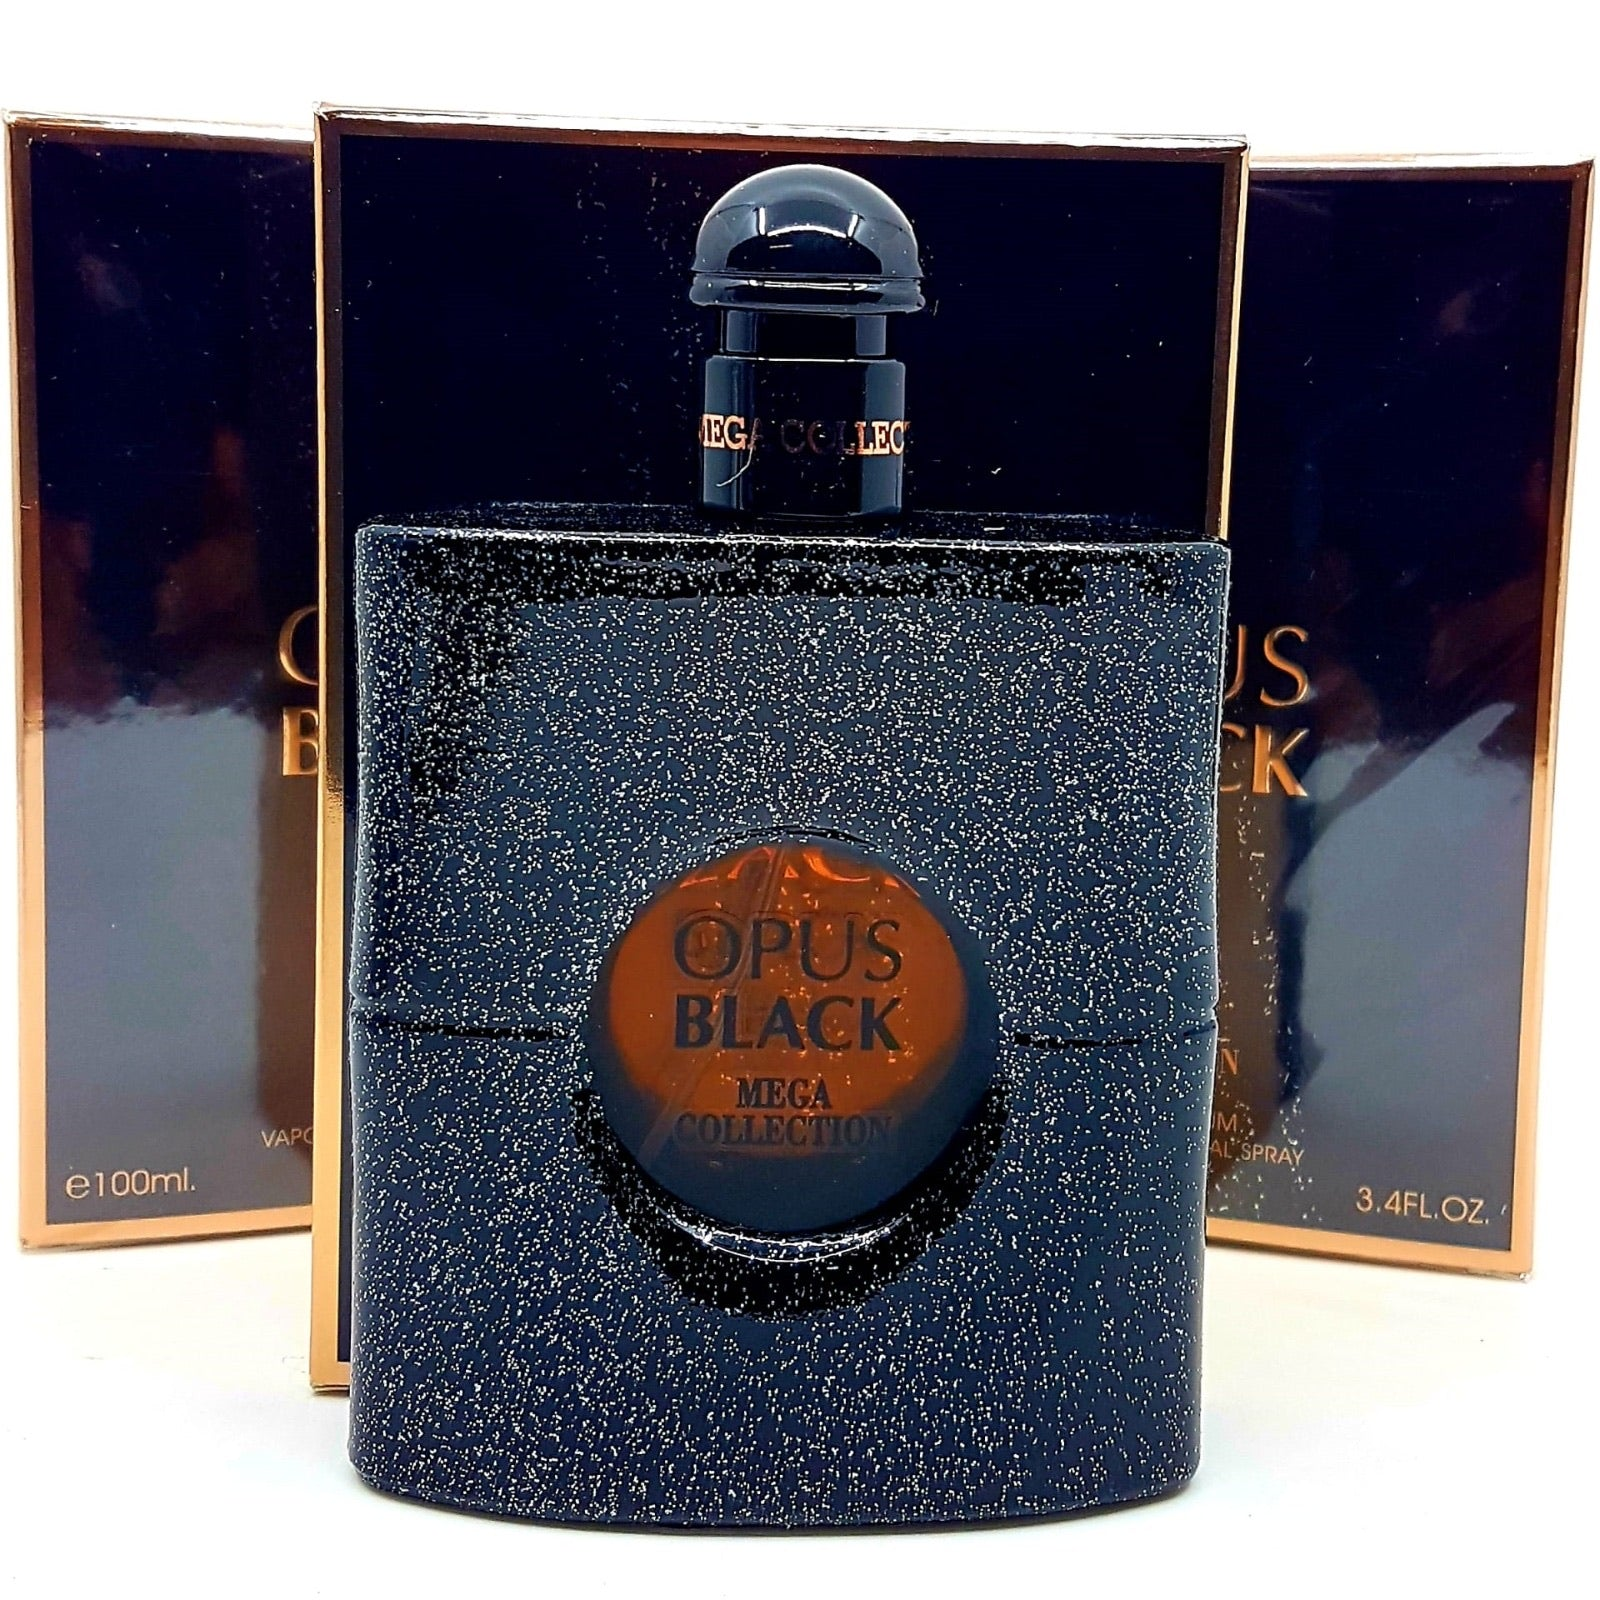 Opus black Parfume for women